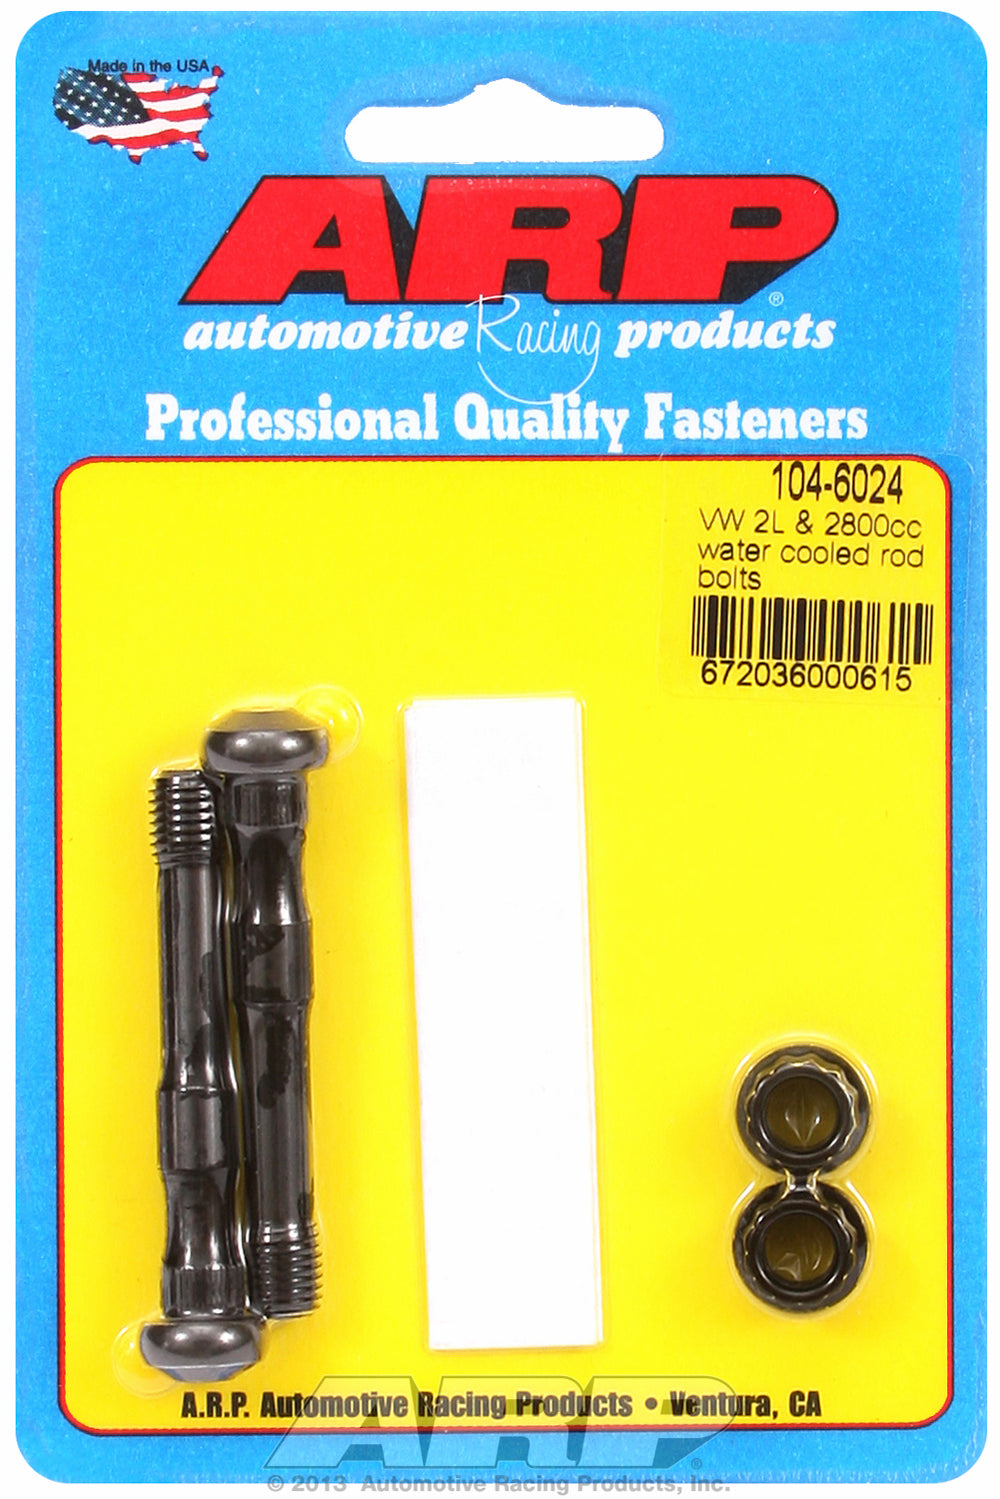 Pro Series ARP2000 2-pc Rod Bolt Kit for Volkswagen/Audi 1.8L & 2.0L water cooled